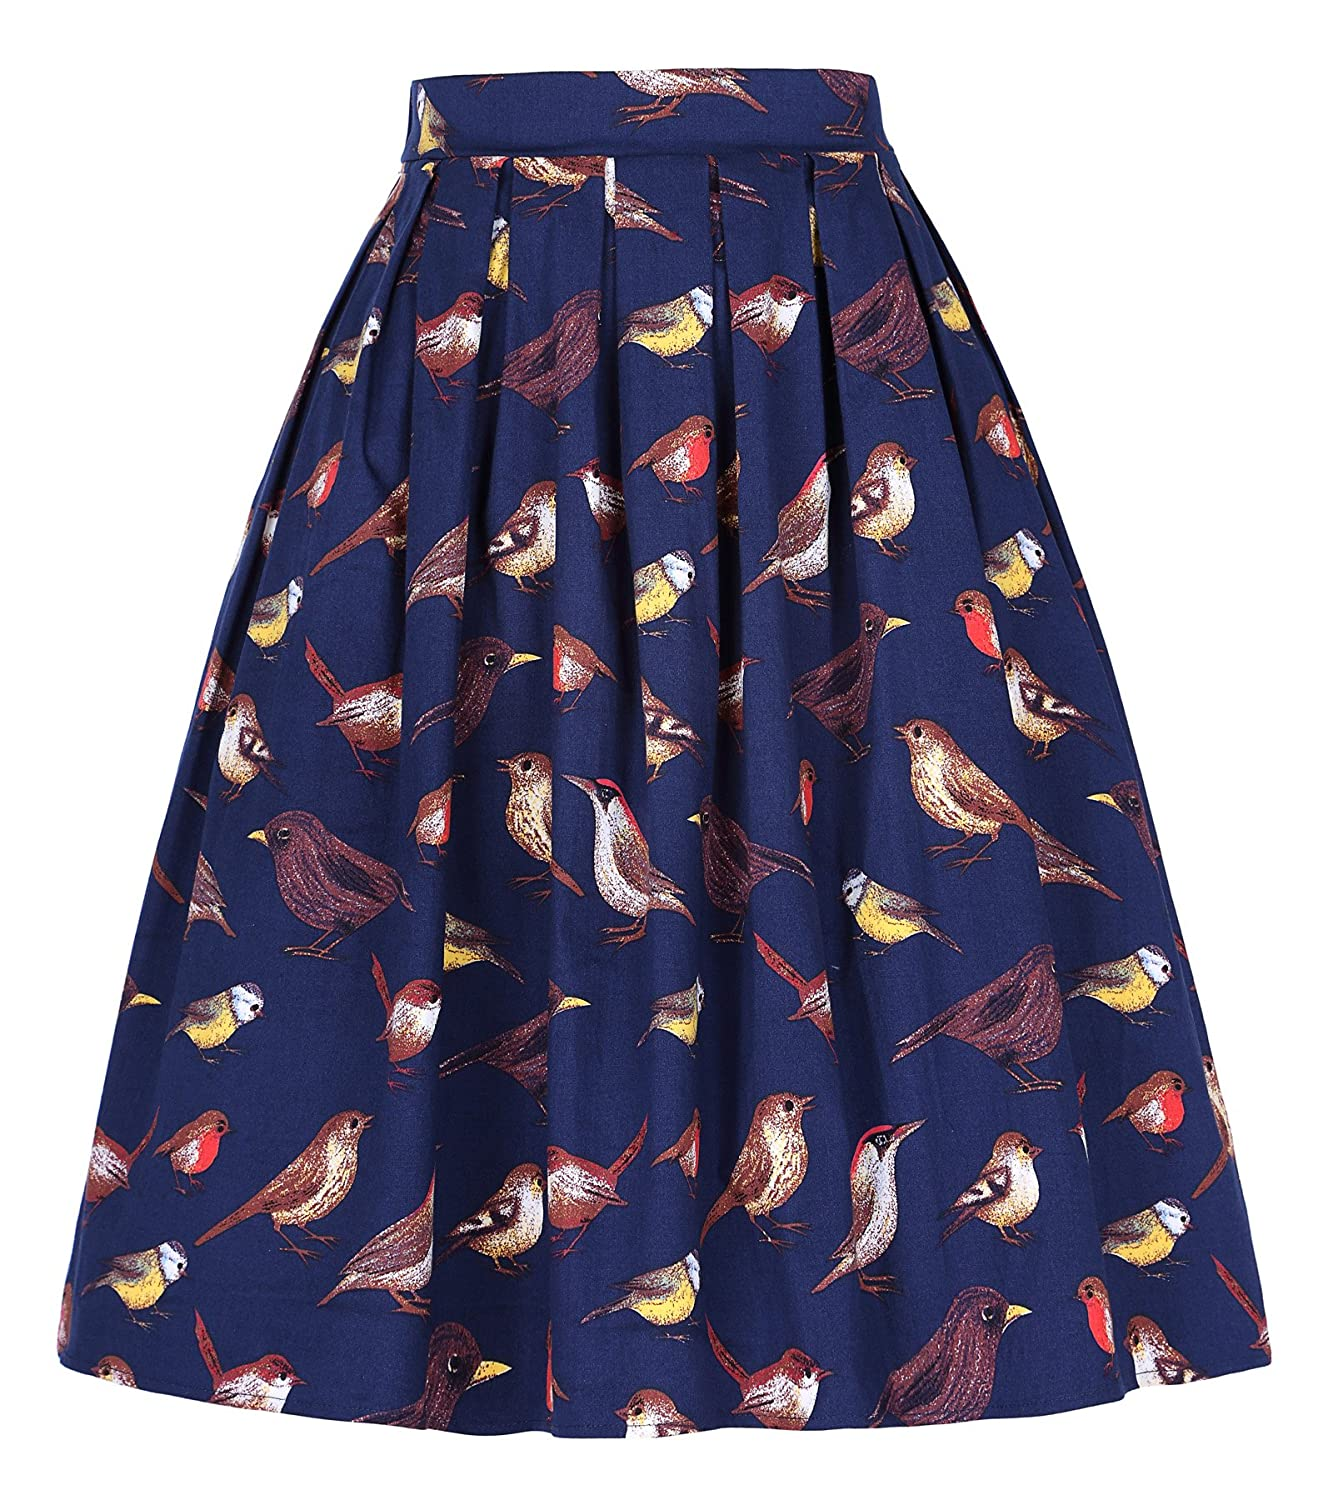 new style bfd47 a40b9 Amazon.com  GRACE KARIN Women Pleated Vintage Skirts Floral Print CL6294  (Multi-Colored)  Clothing